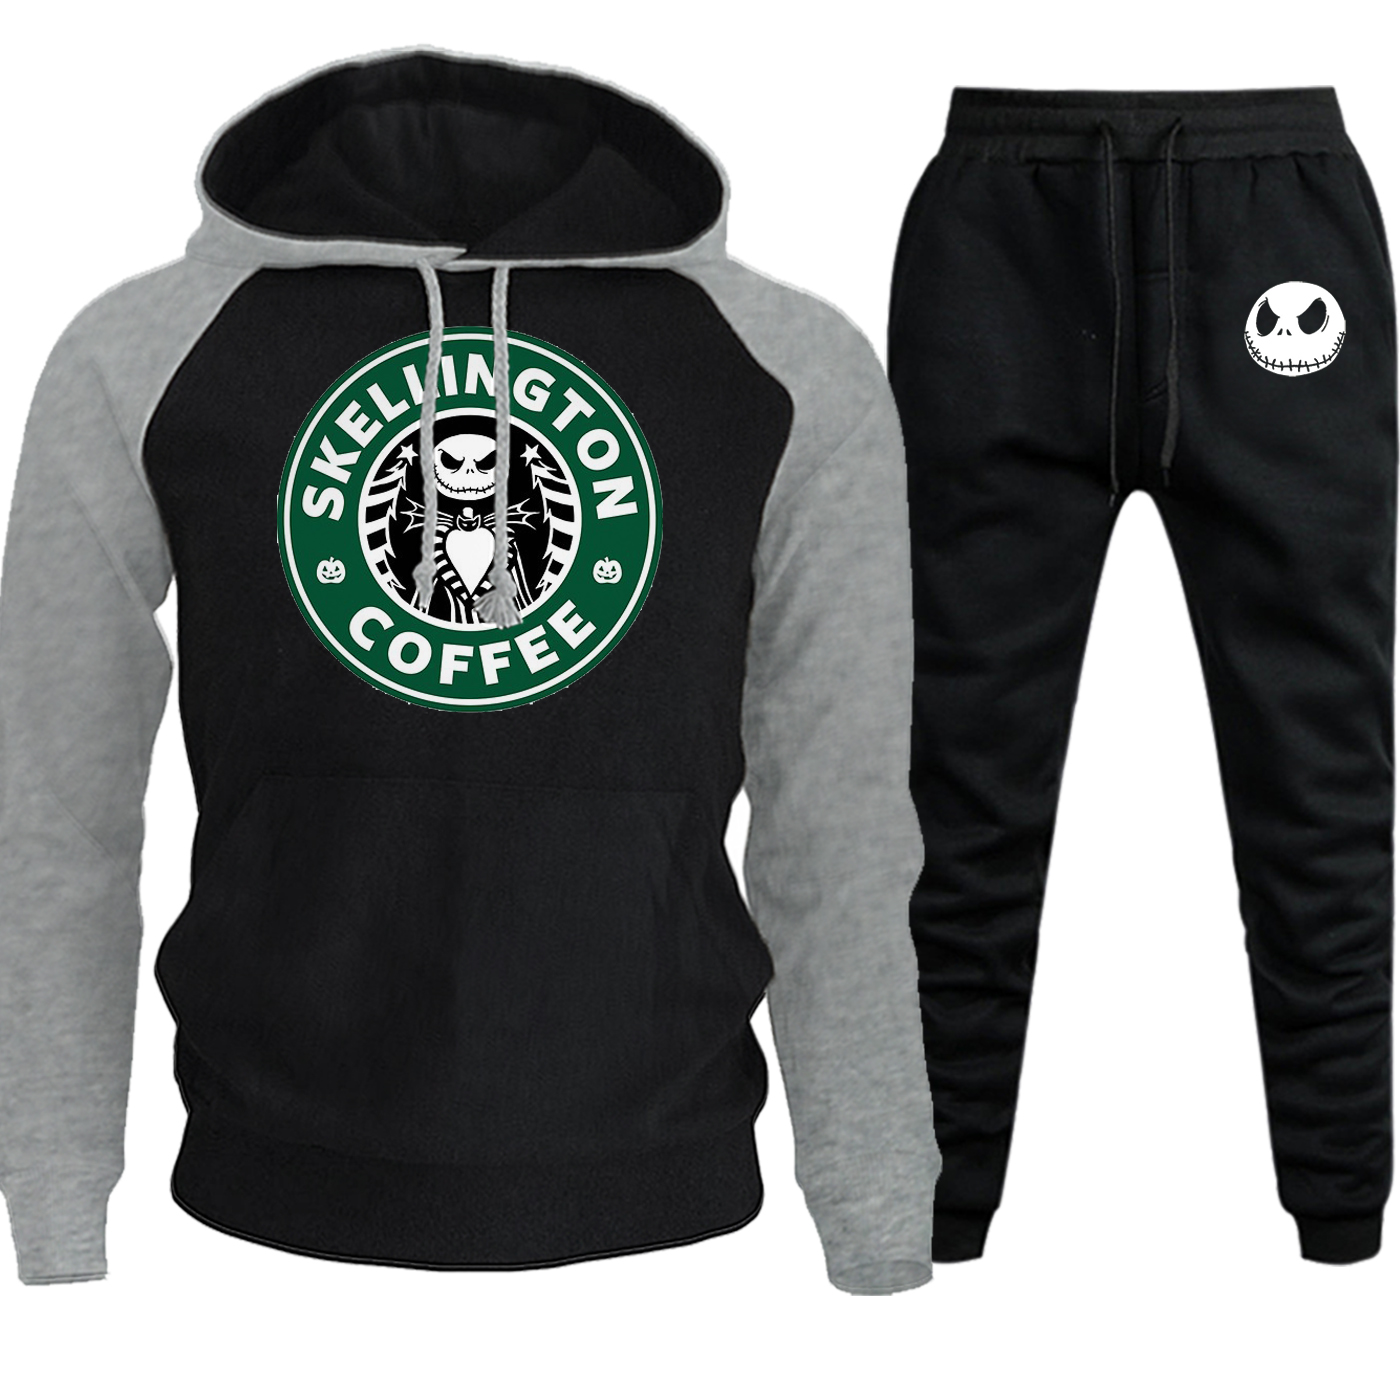 Fleece Hooded Jack Coffee The Nightmare Autumn Winter 2019 Sportswear Mens Hoodies Raglan Suit Male Pullover+Pants 2 Piece Set